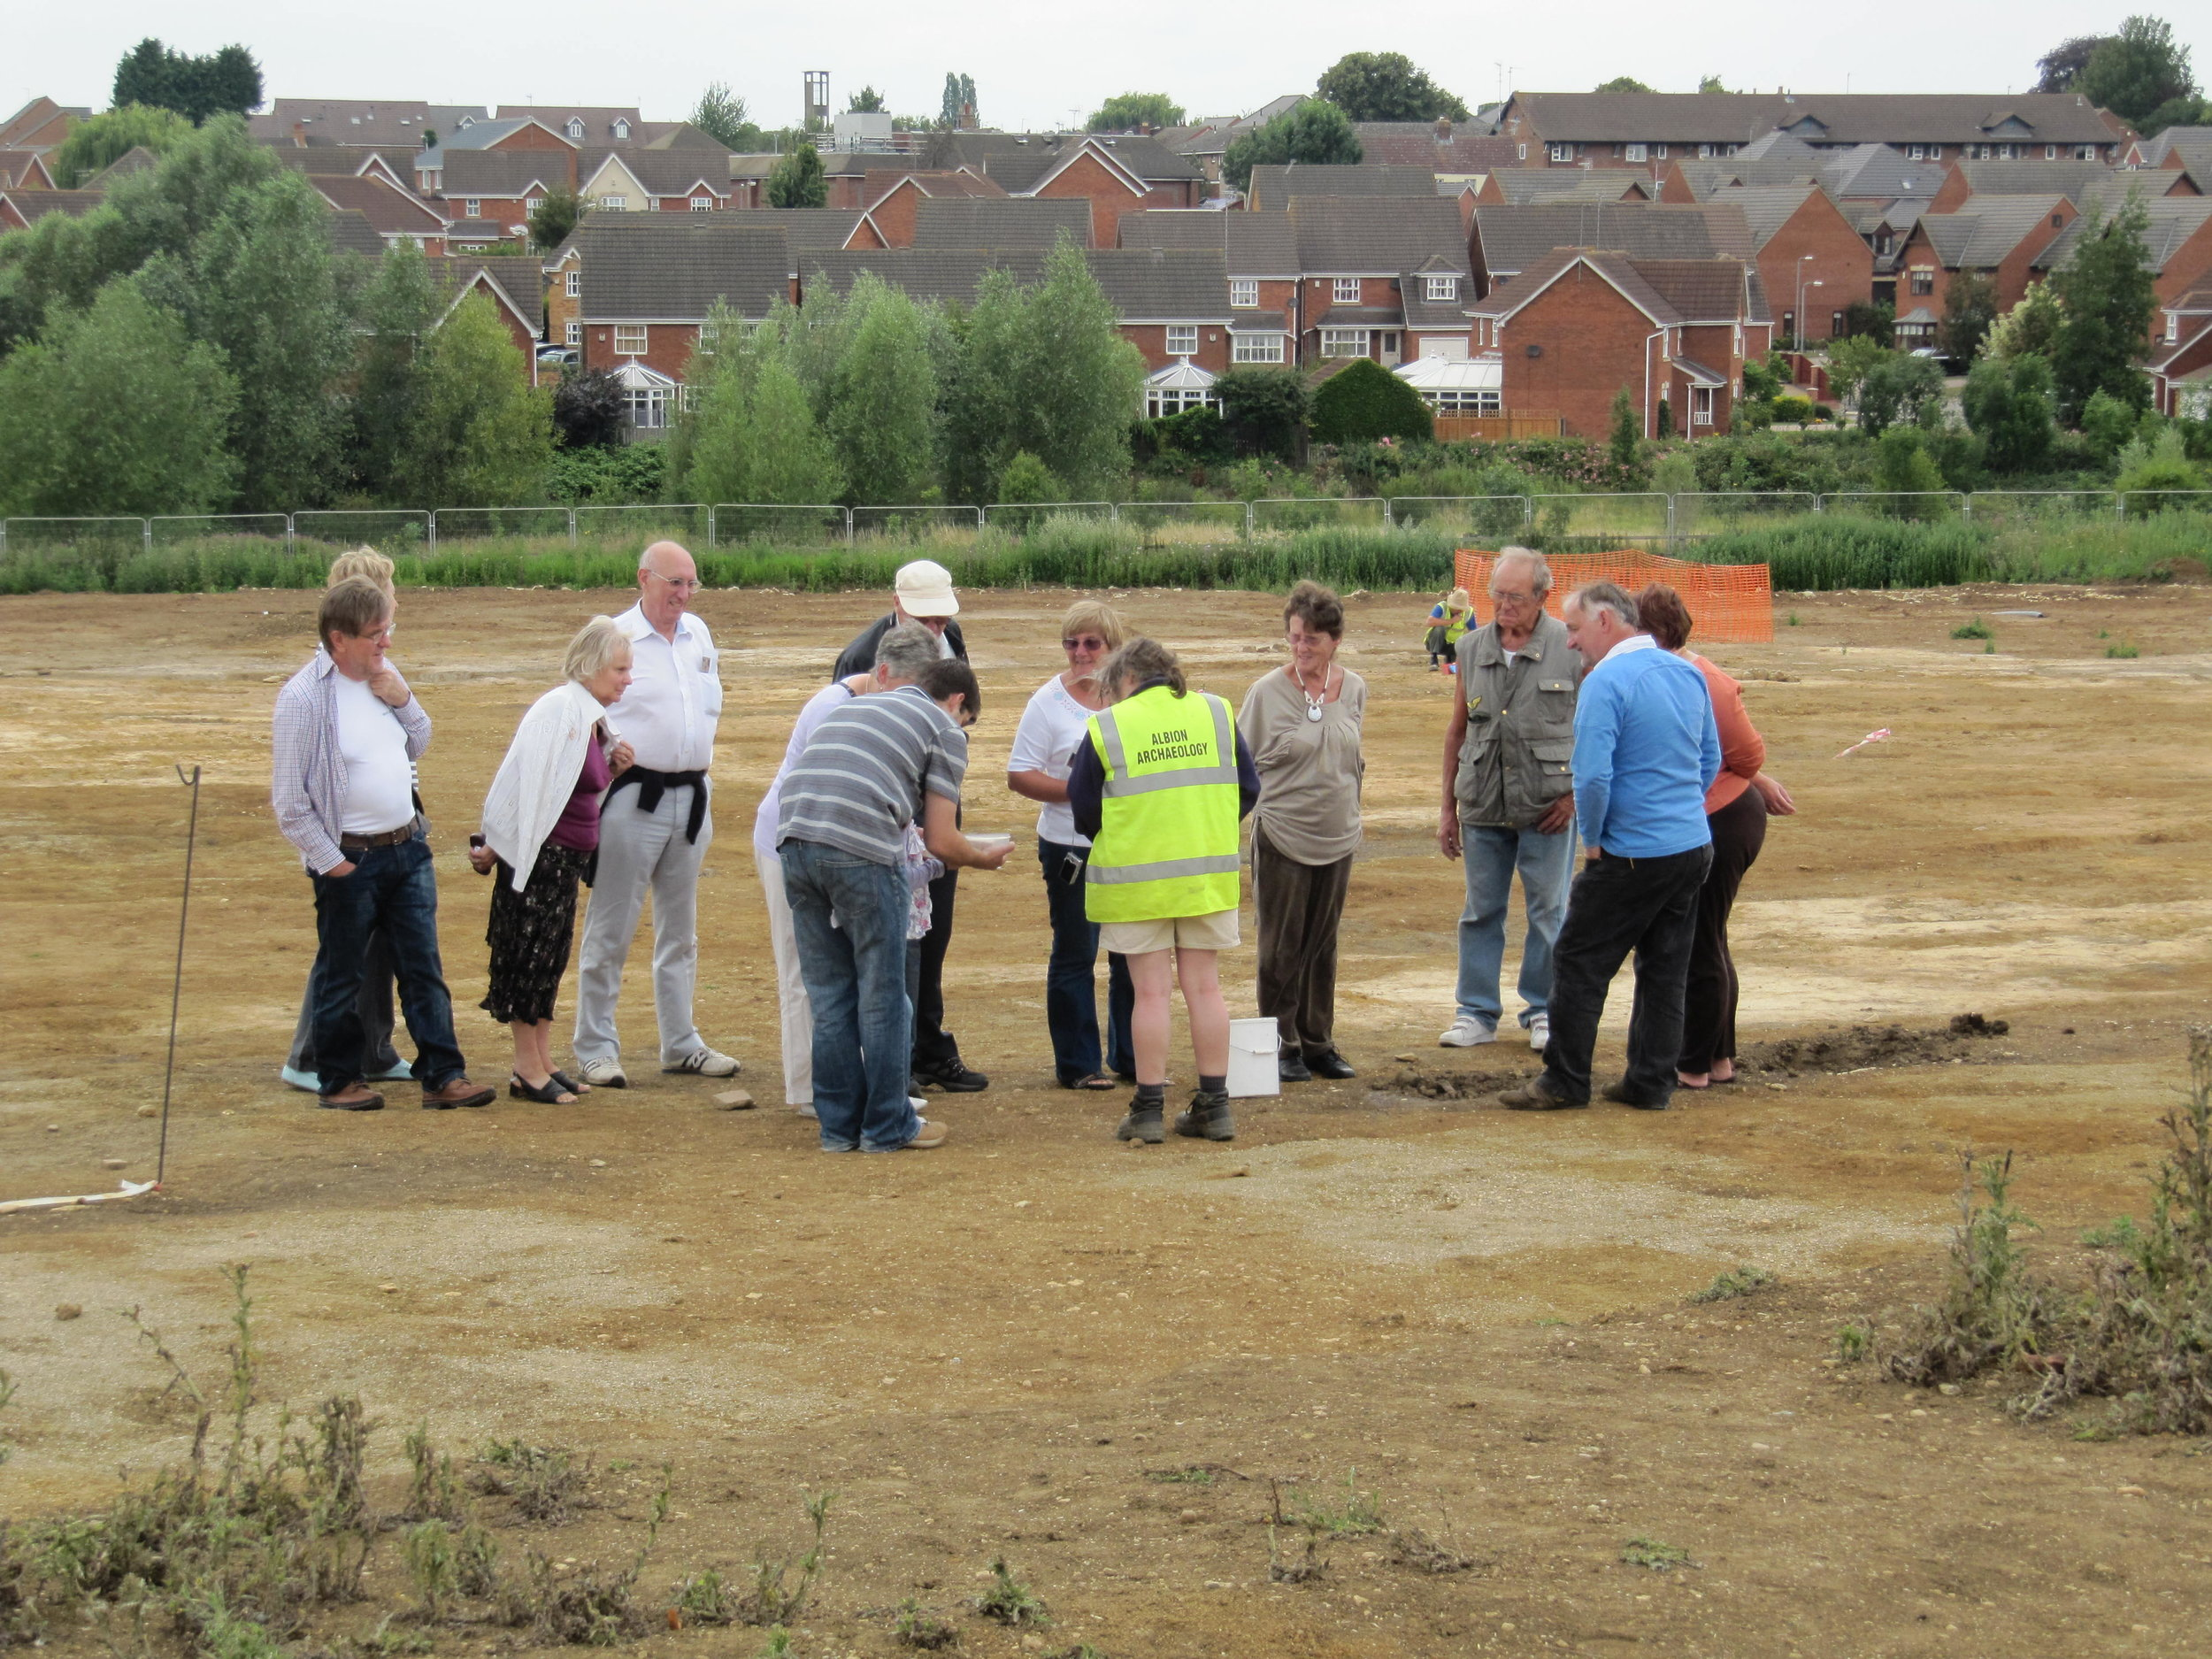 Presentation following work between Ipswich and Felixstowe, July 2017. An Albion Archaeology community engagement project.